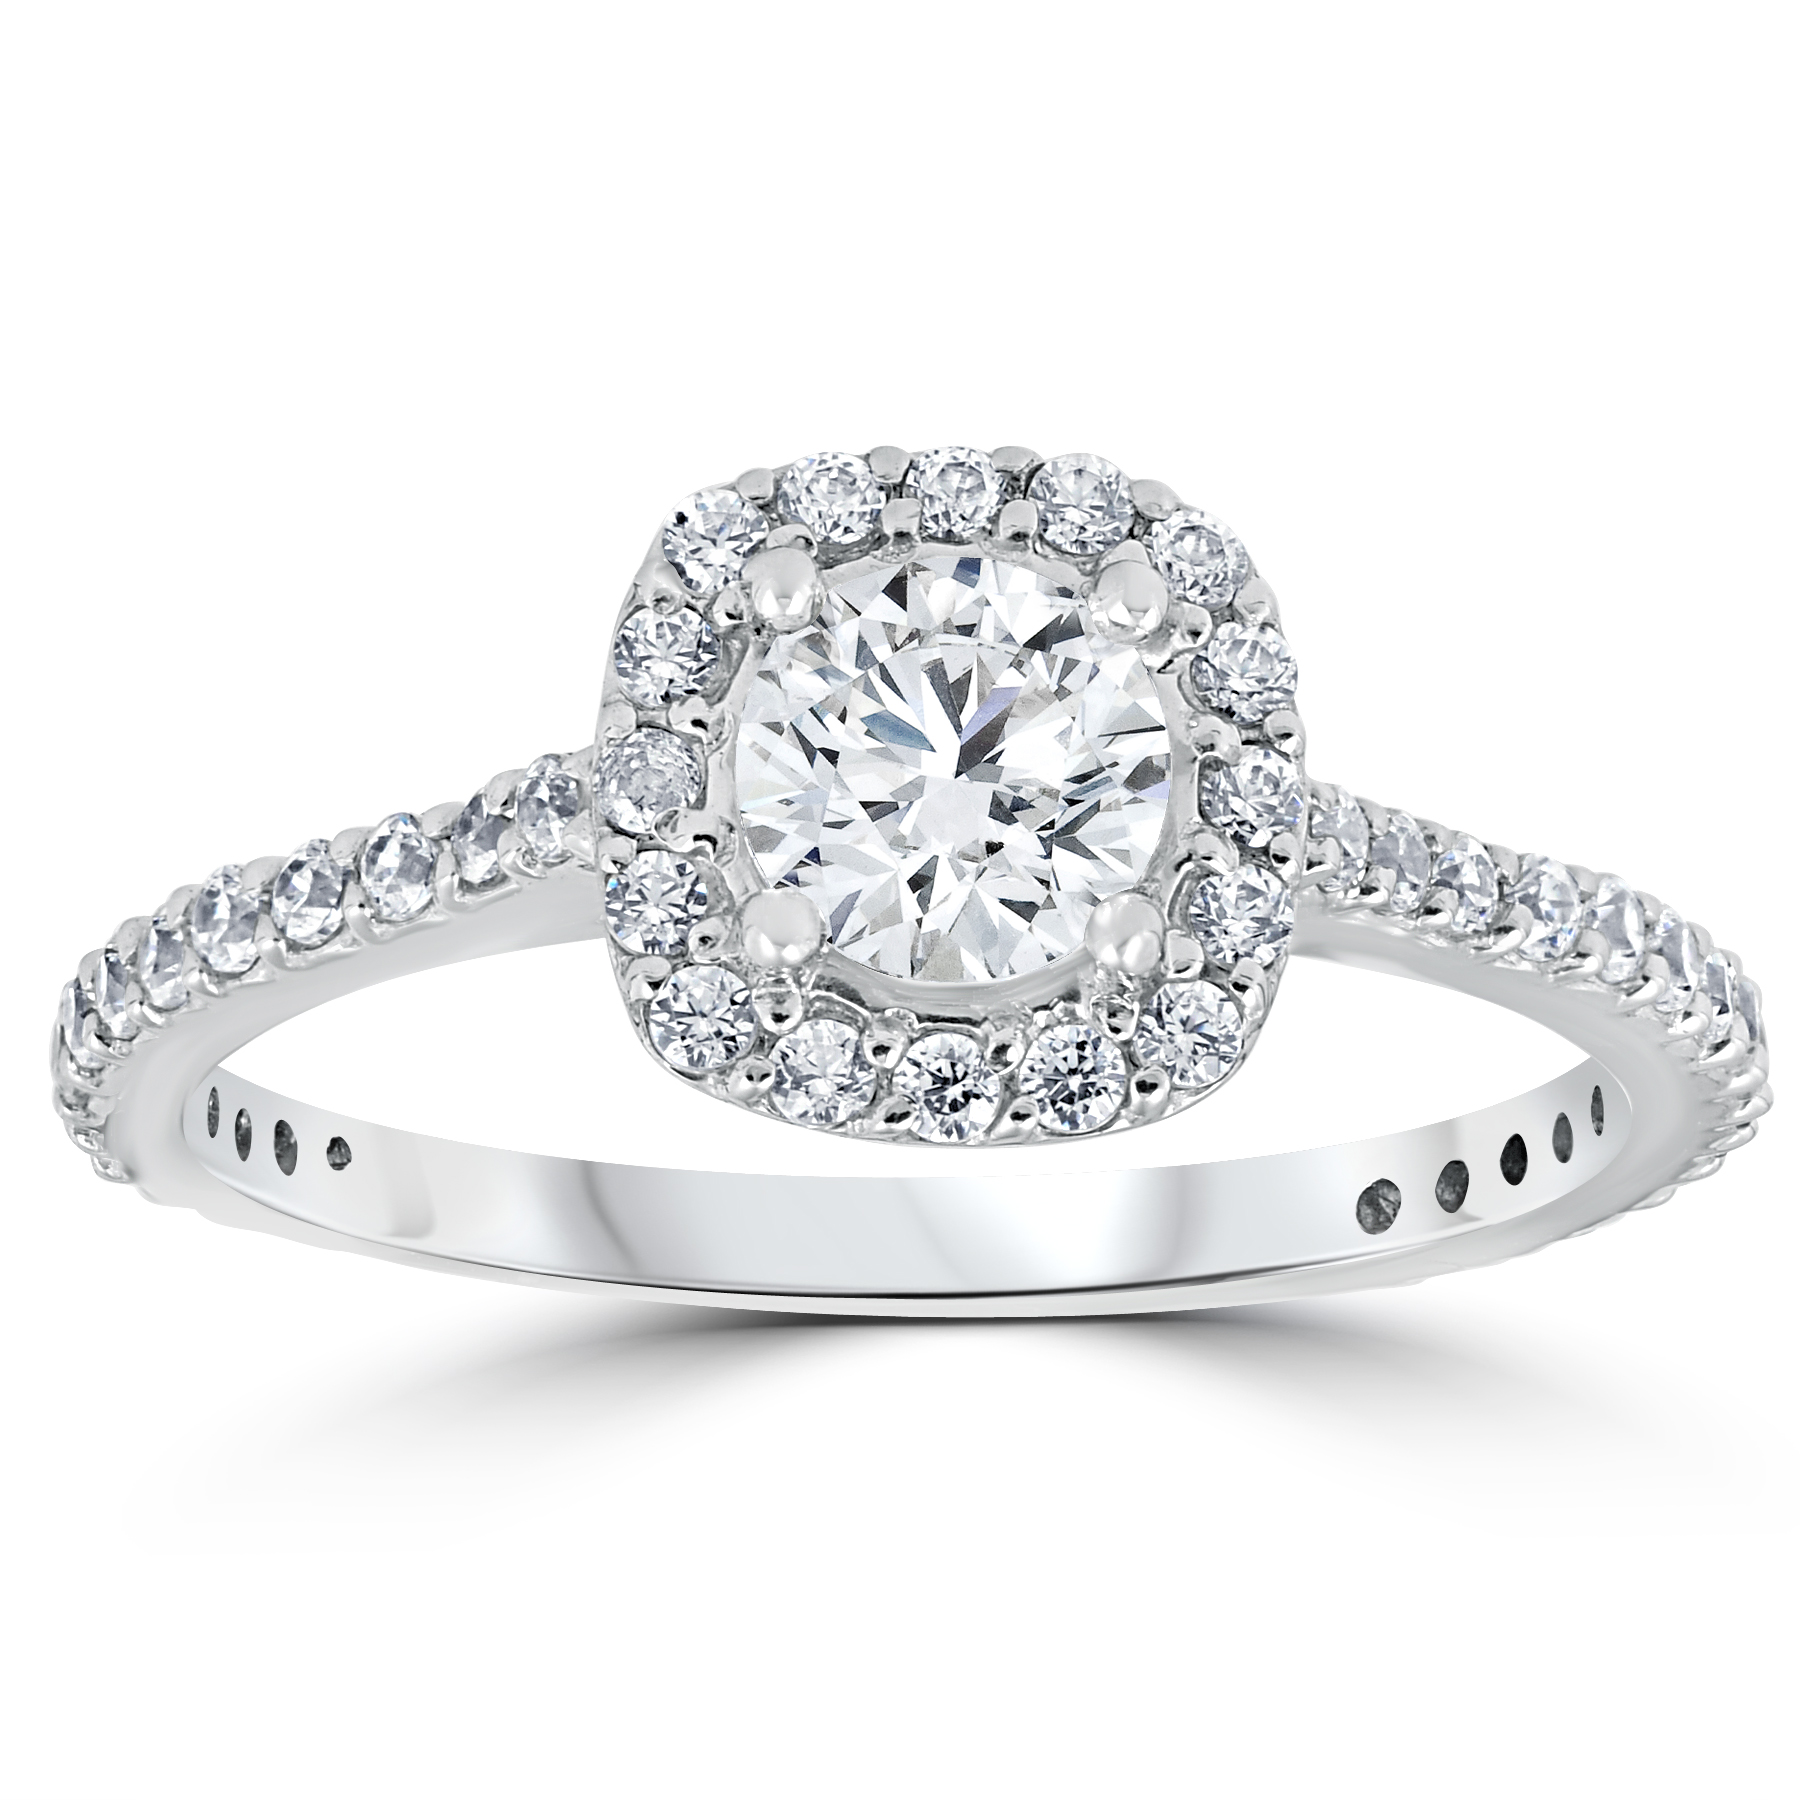 1 1 5ct TDW Cushion Halo Round Diamond Engagement Ring 14k White Gold Solitai